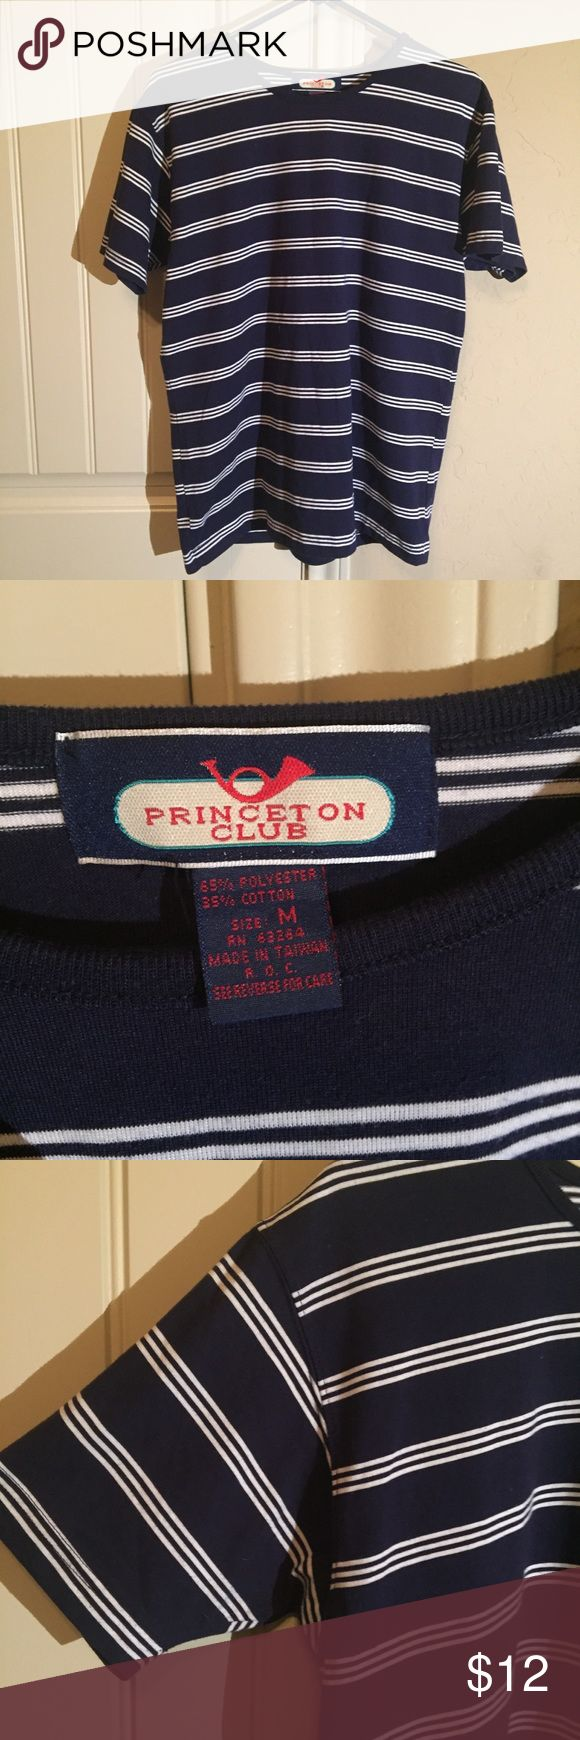 Striped Blue and White Shirt Navy Nautical Tee Great condition! Beautiful blue and white striped tee shirt. Very nautical. Size Medium. Ask for measurements if you're interested! princeton club Tops Tees - Short Sleeve